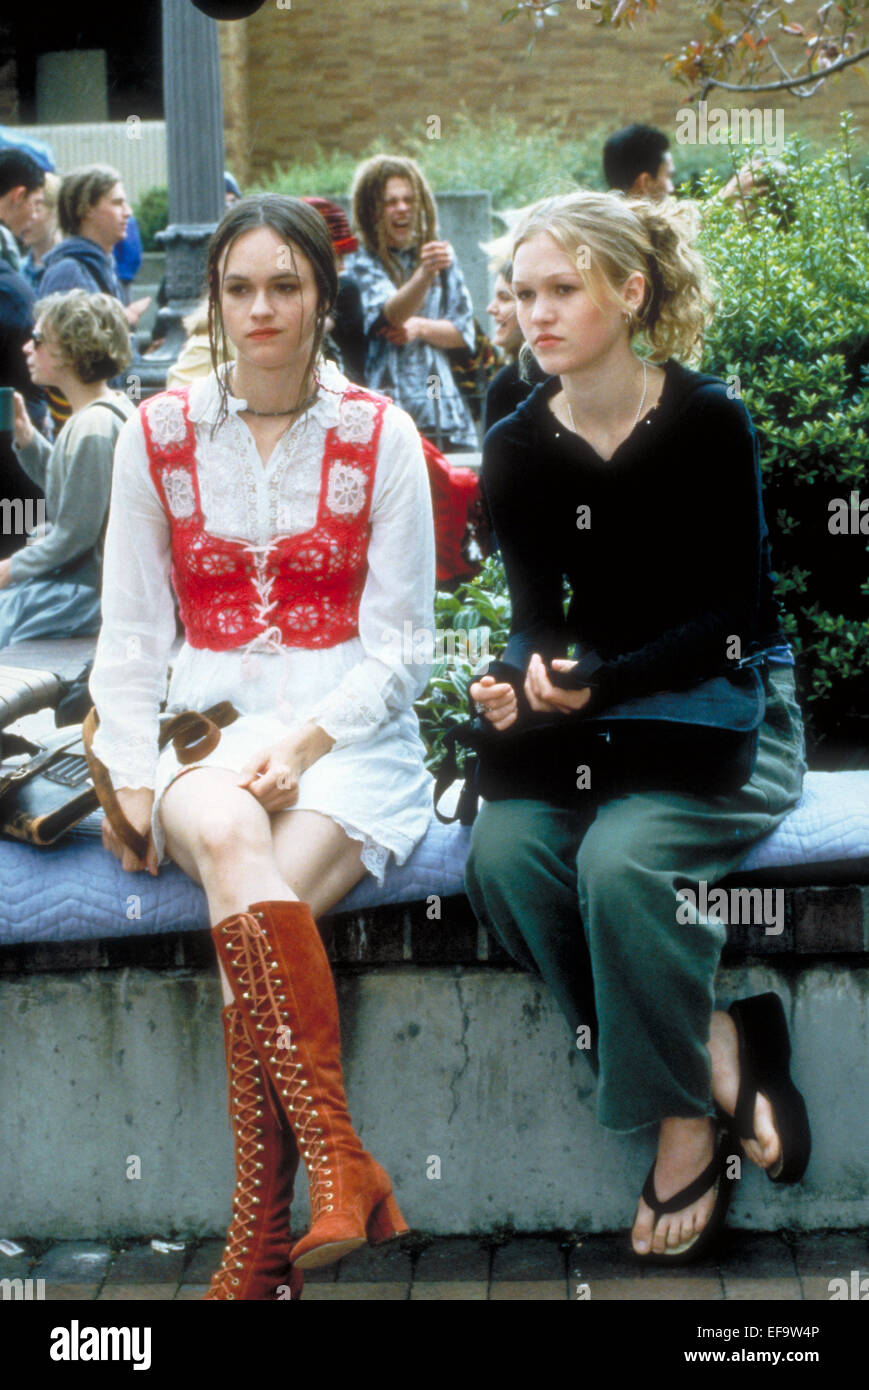 10 Kitchen And Home Decor Items Every 20 Something Needs: SUSAN MAY PRATT & JULIA STILES 10 THINGS I HATE ABOUT YOU